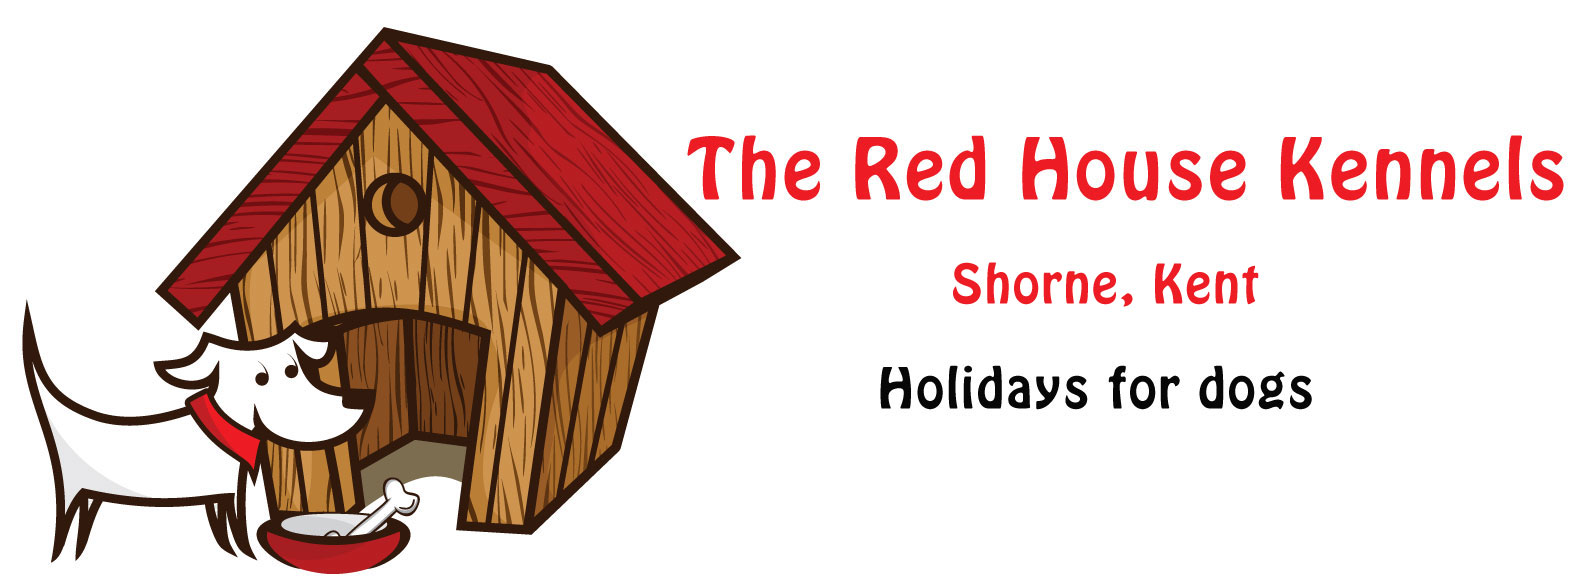 Red House Kennels | Holidays for your dogs